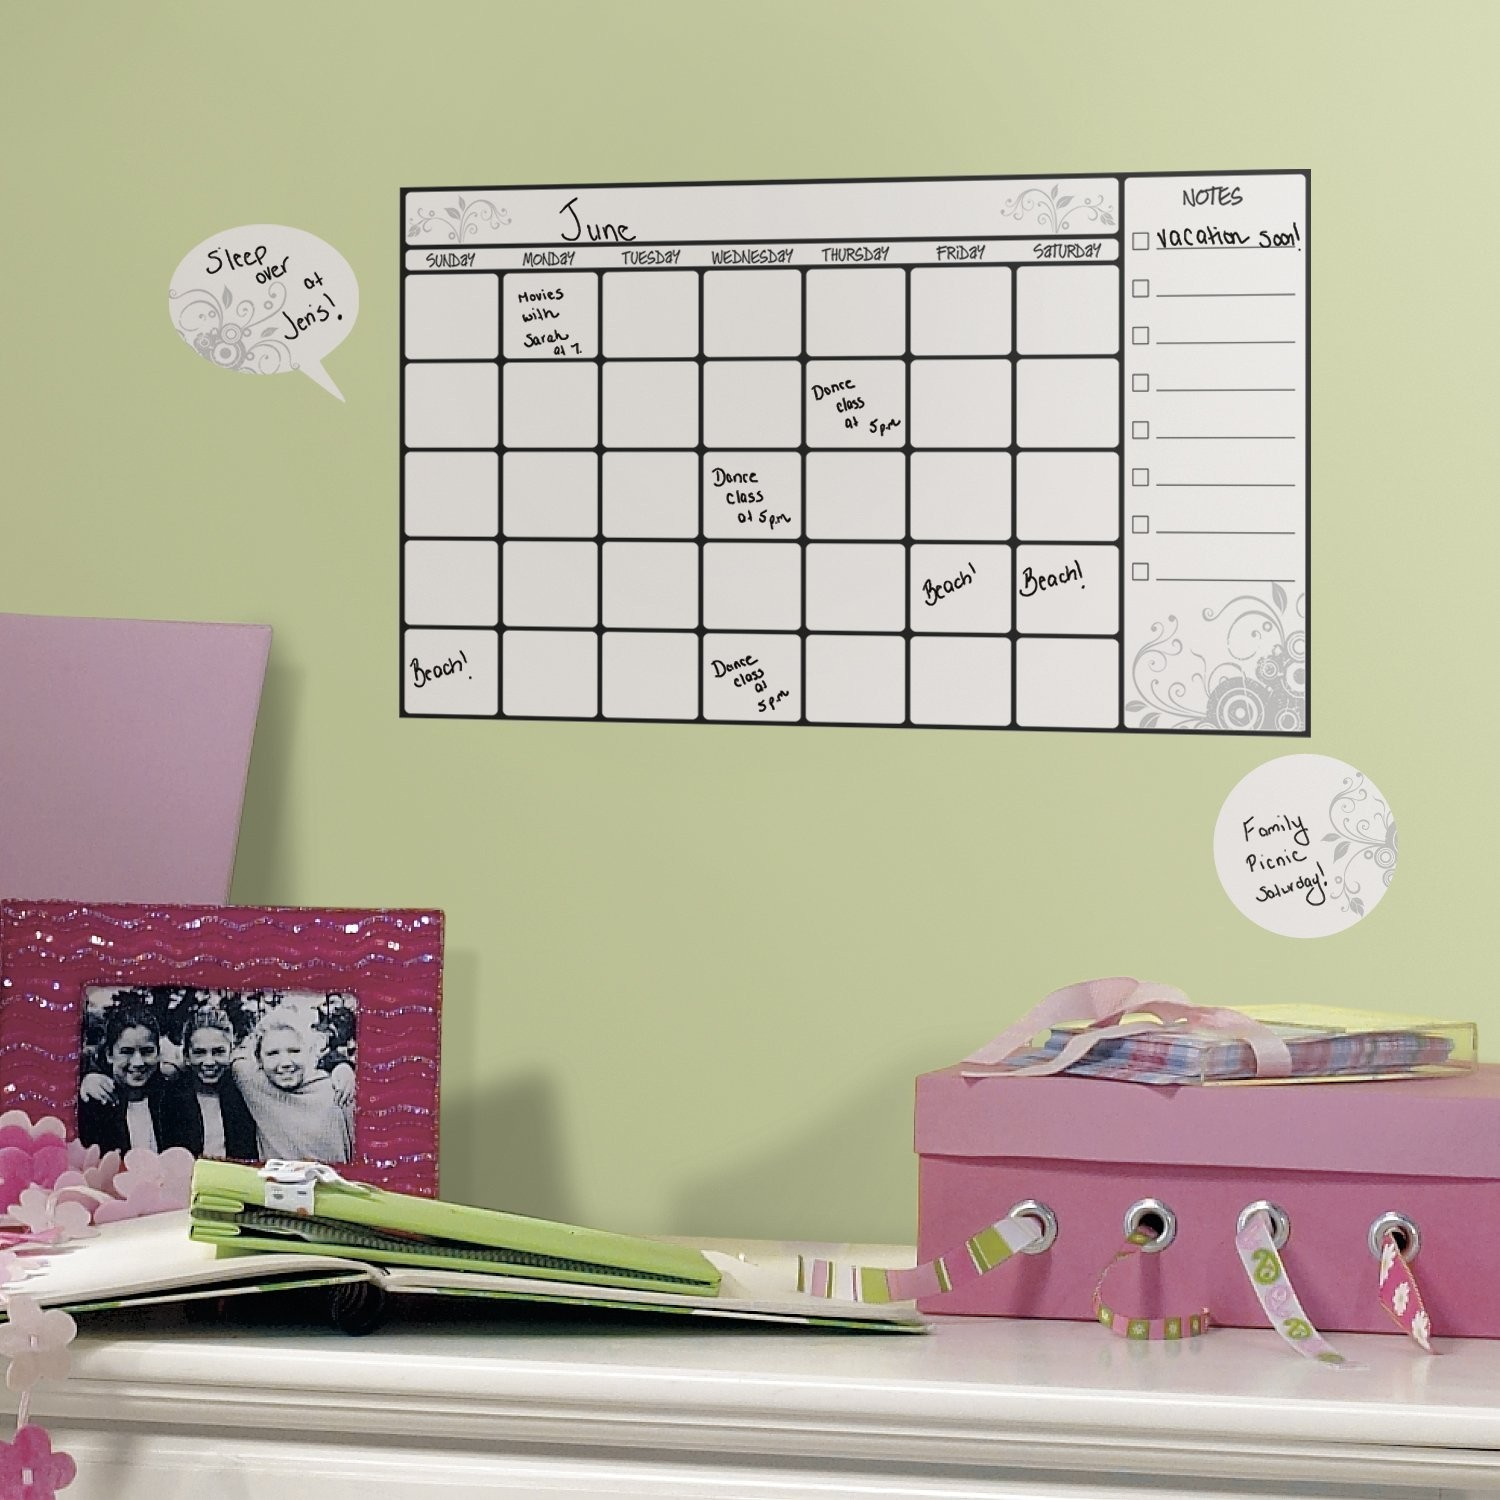 March Reading Month Calendar Activities Recientes Amazon Roommates Rmk1556scs Wall Decal 17 325 Inch X 9 Inch Of March Reading Month Calendar Activities Más Caliente Calendar Of events